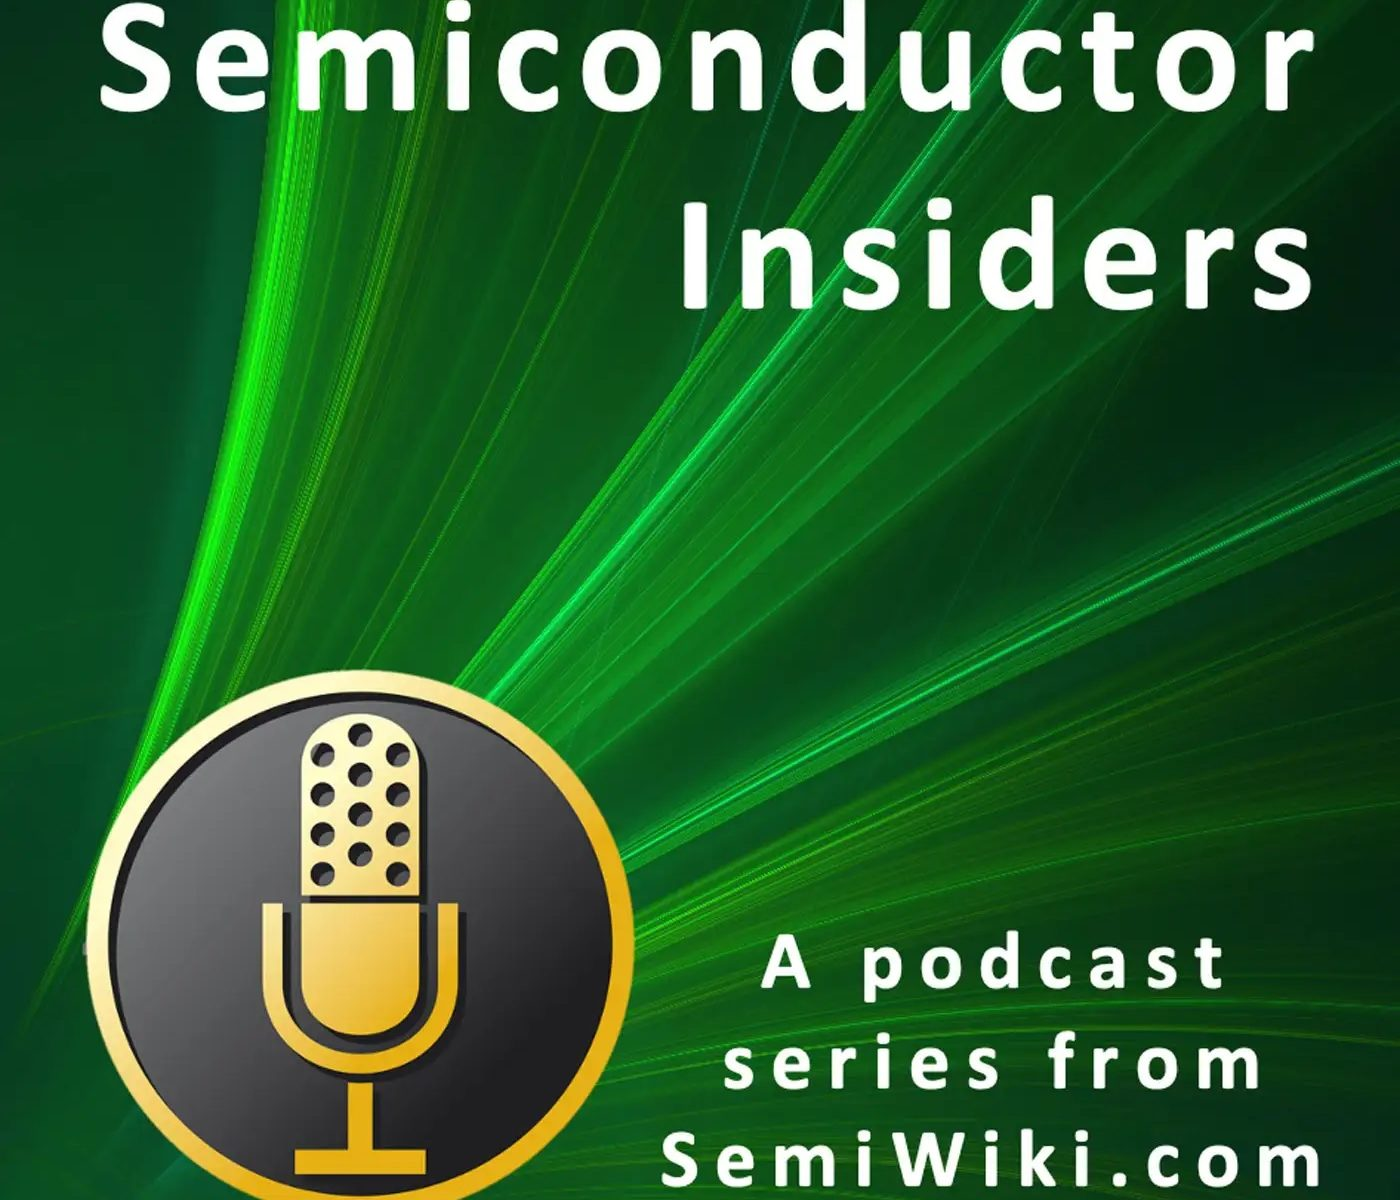 Semiconductor Insiders Podcast Icon 1